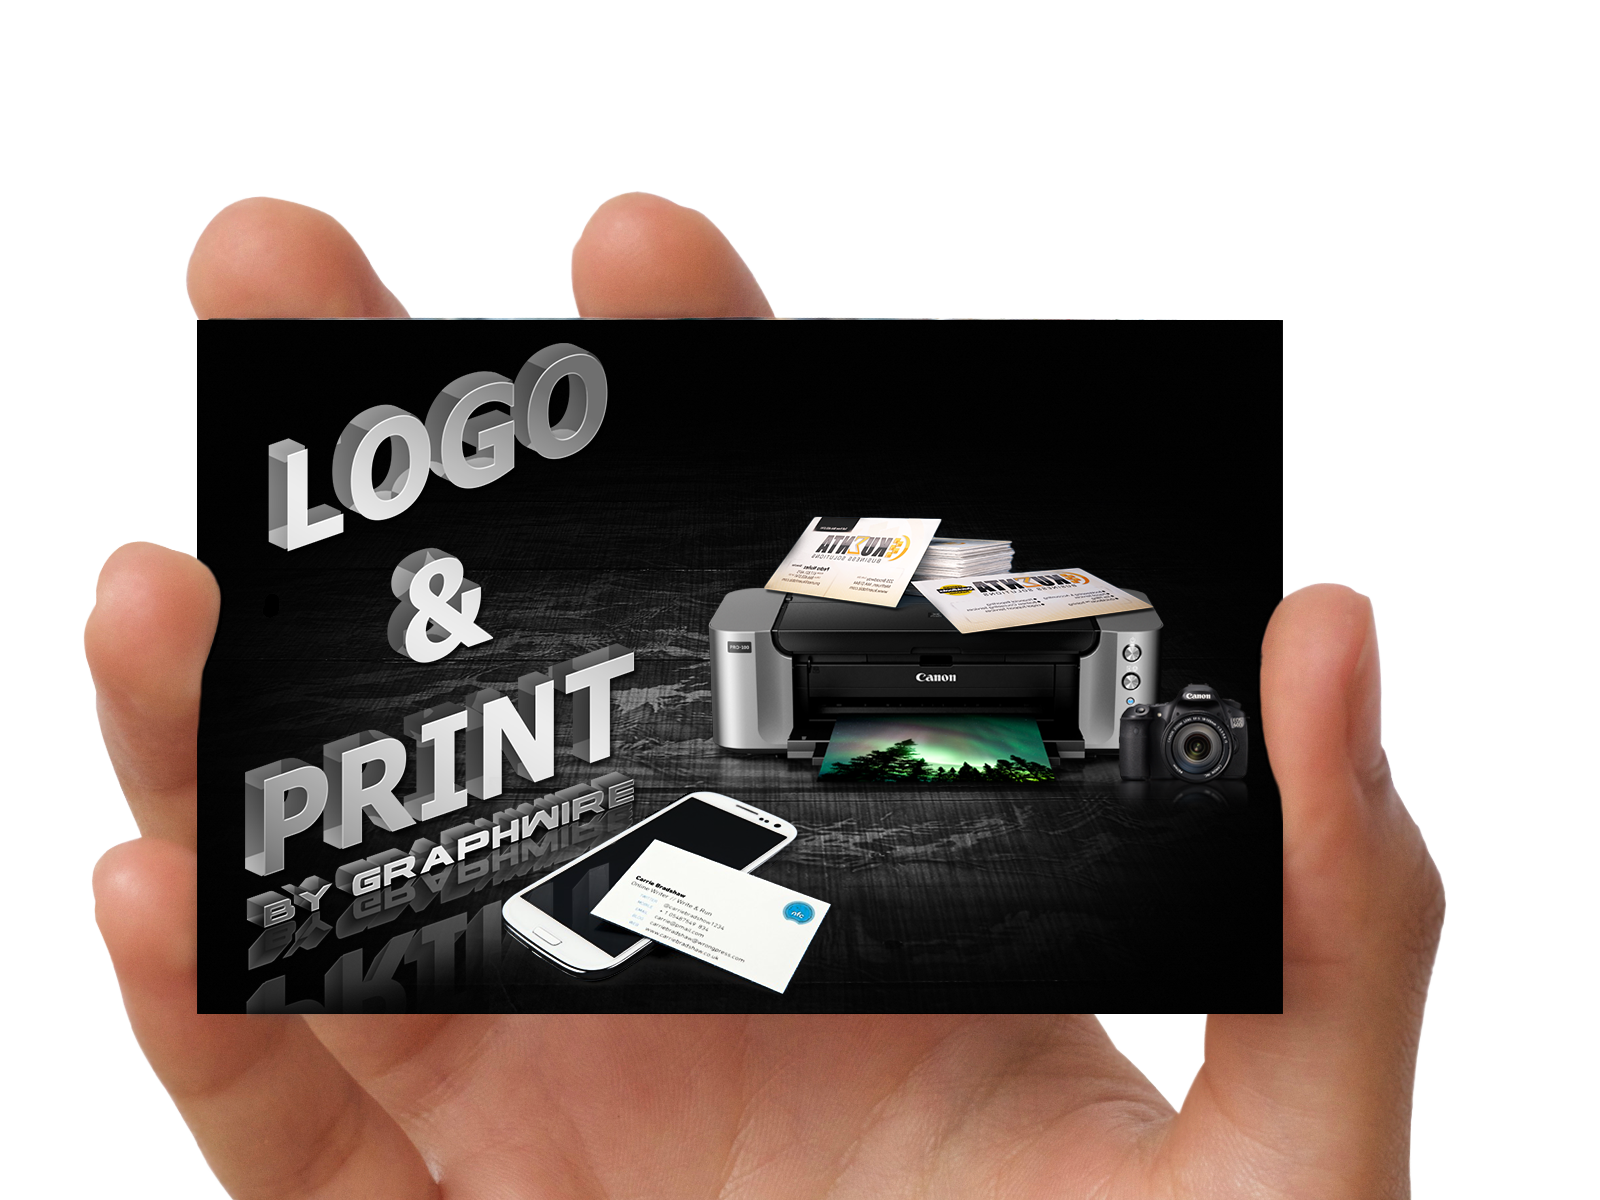 logo print photo manipulation